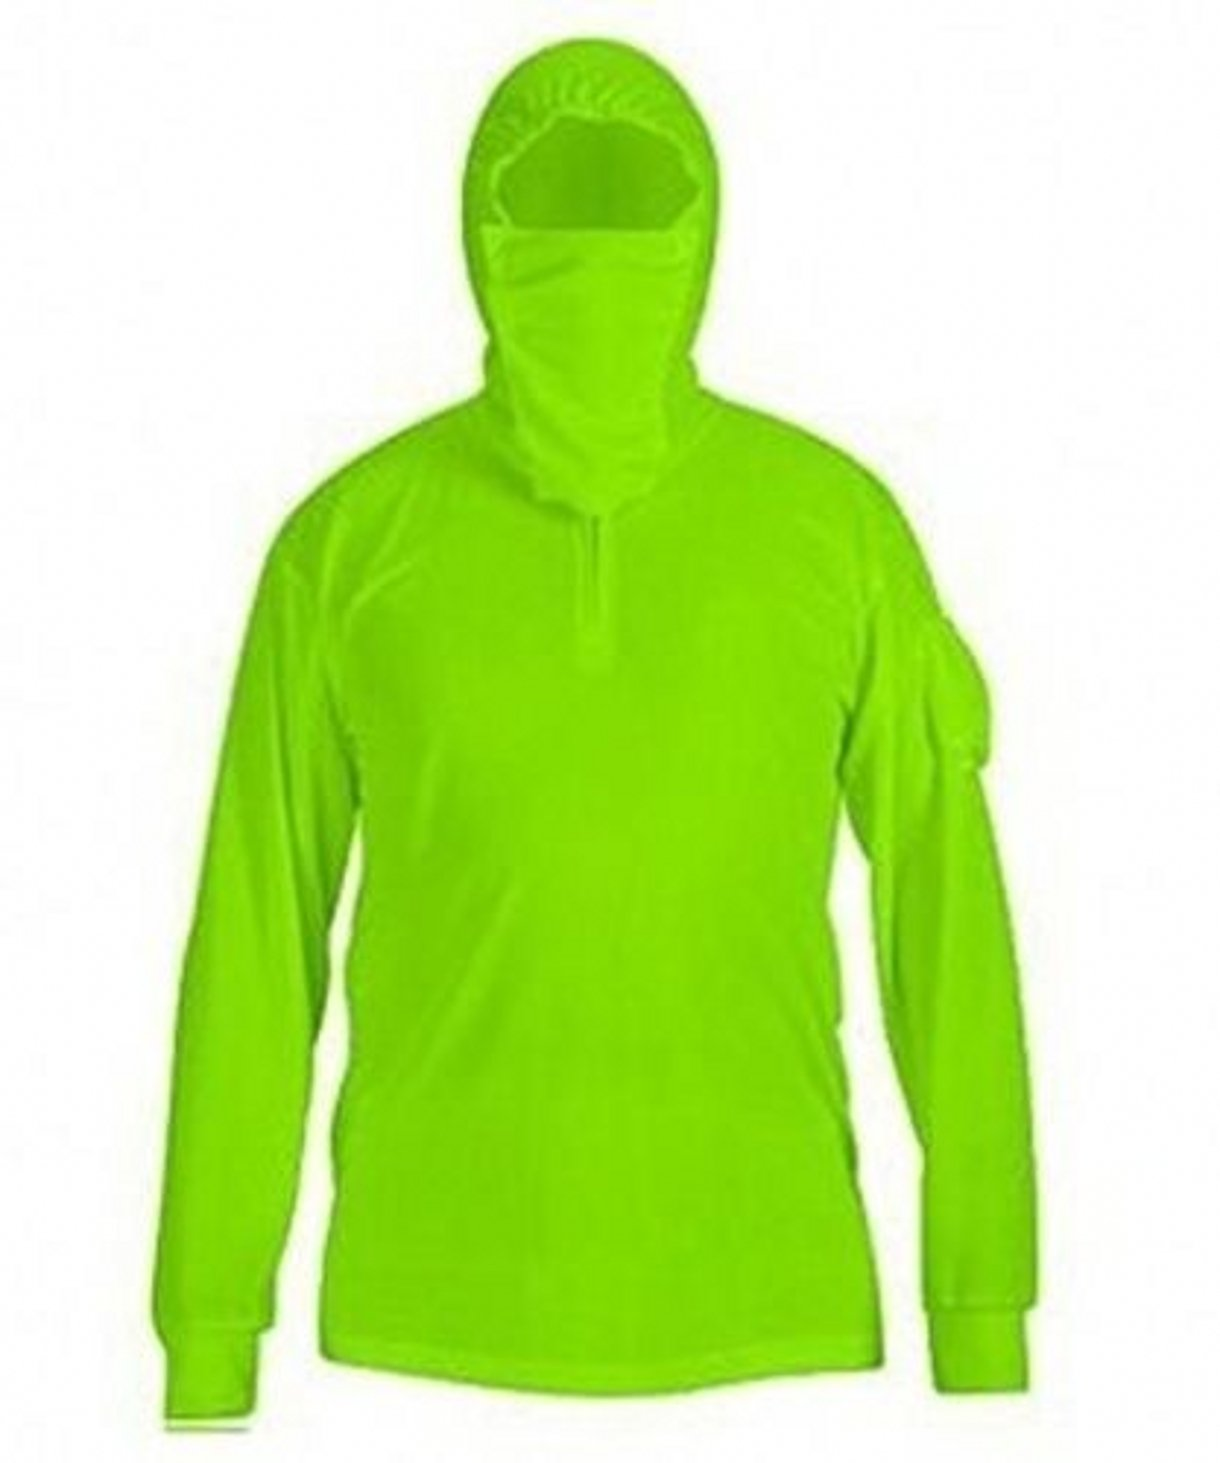 Venxic Men's Fishing Shirts for Men Long Sleeve UV Protection, Quick Dry Sun Shirt/w Thumb Hole (Green, XXX-Large)